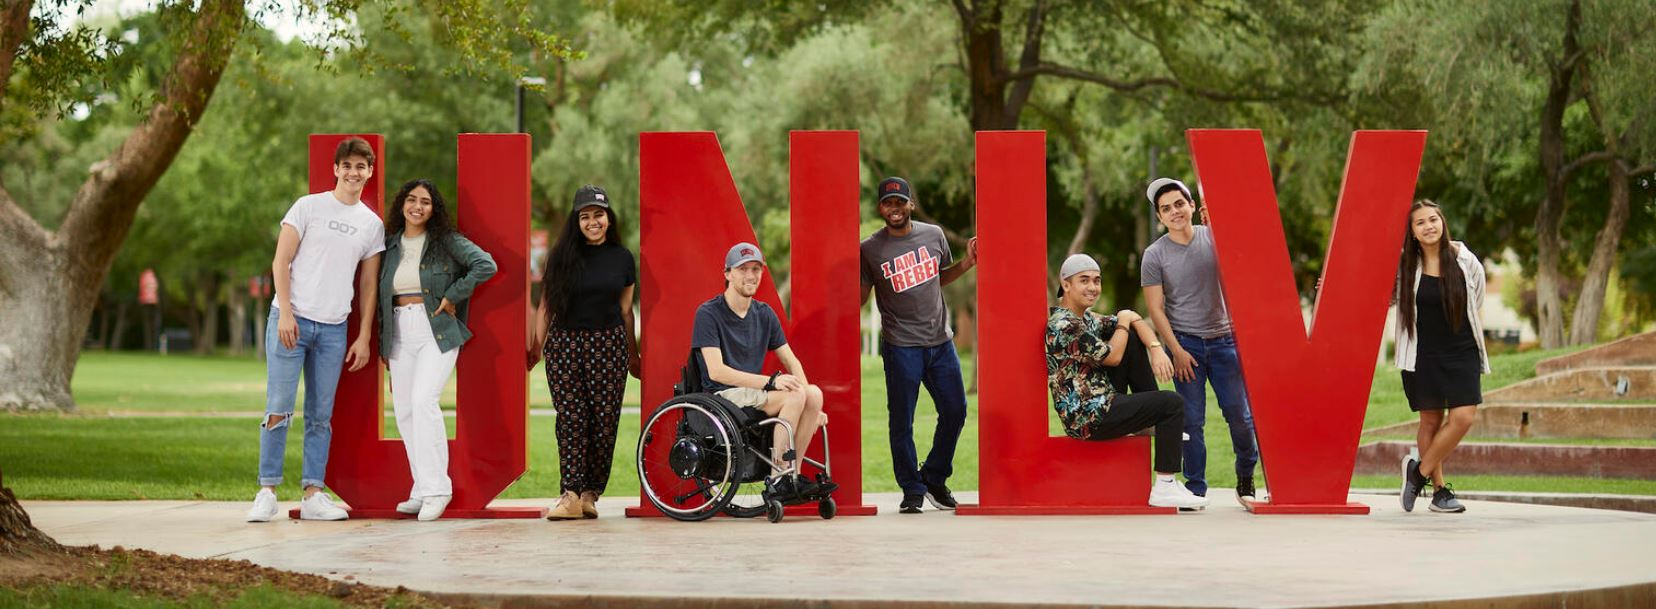 UNLV achieves national and international recognition